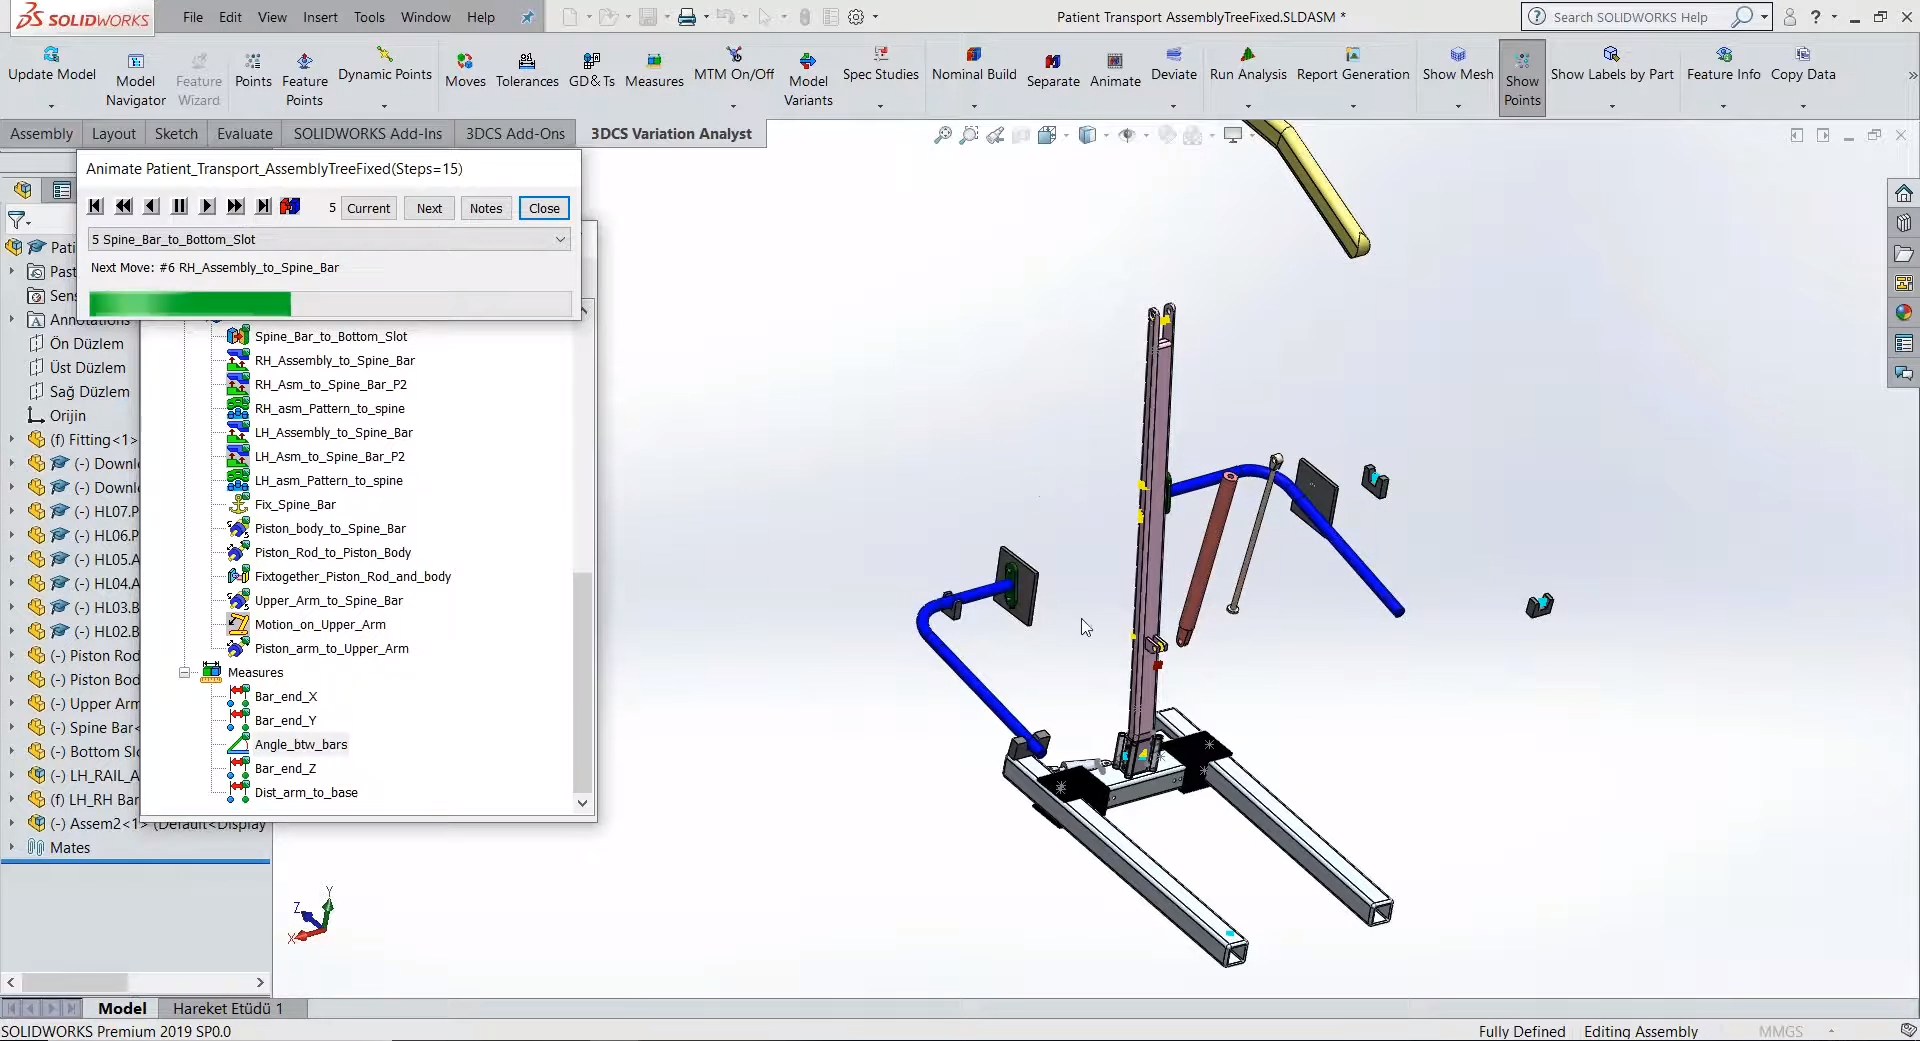 Dimensional Variation Analysis  in SOLIDWORKS - Opening and Assembling Your Product